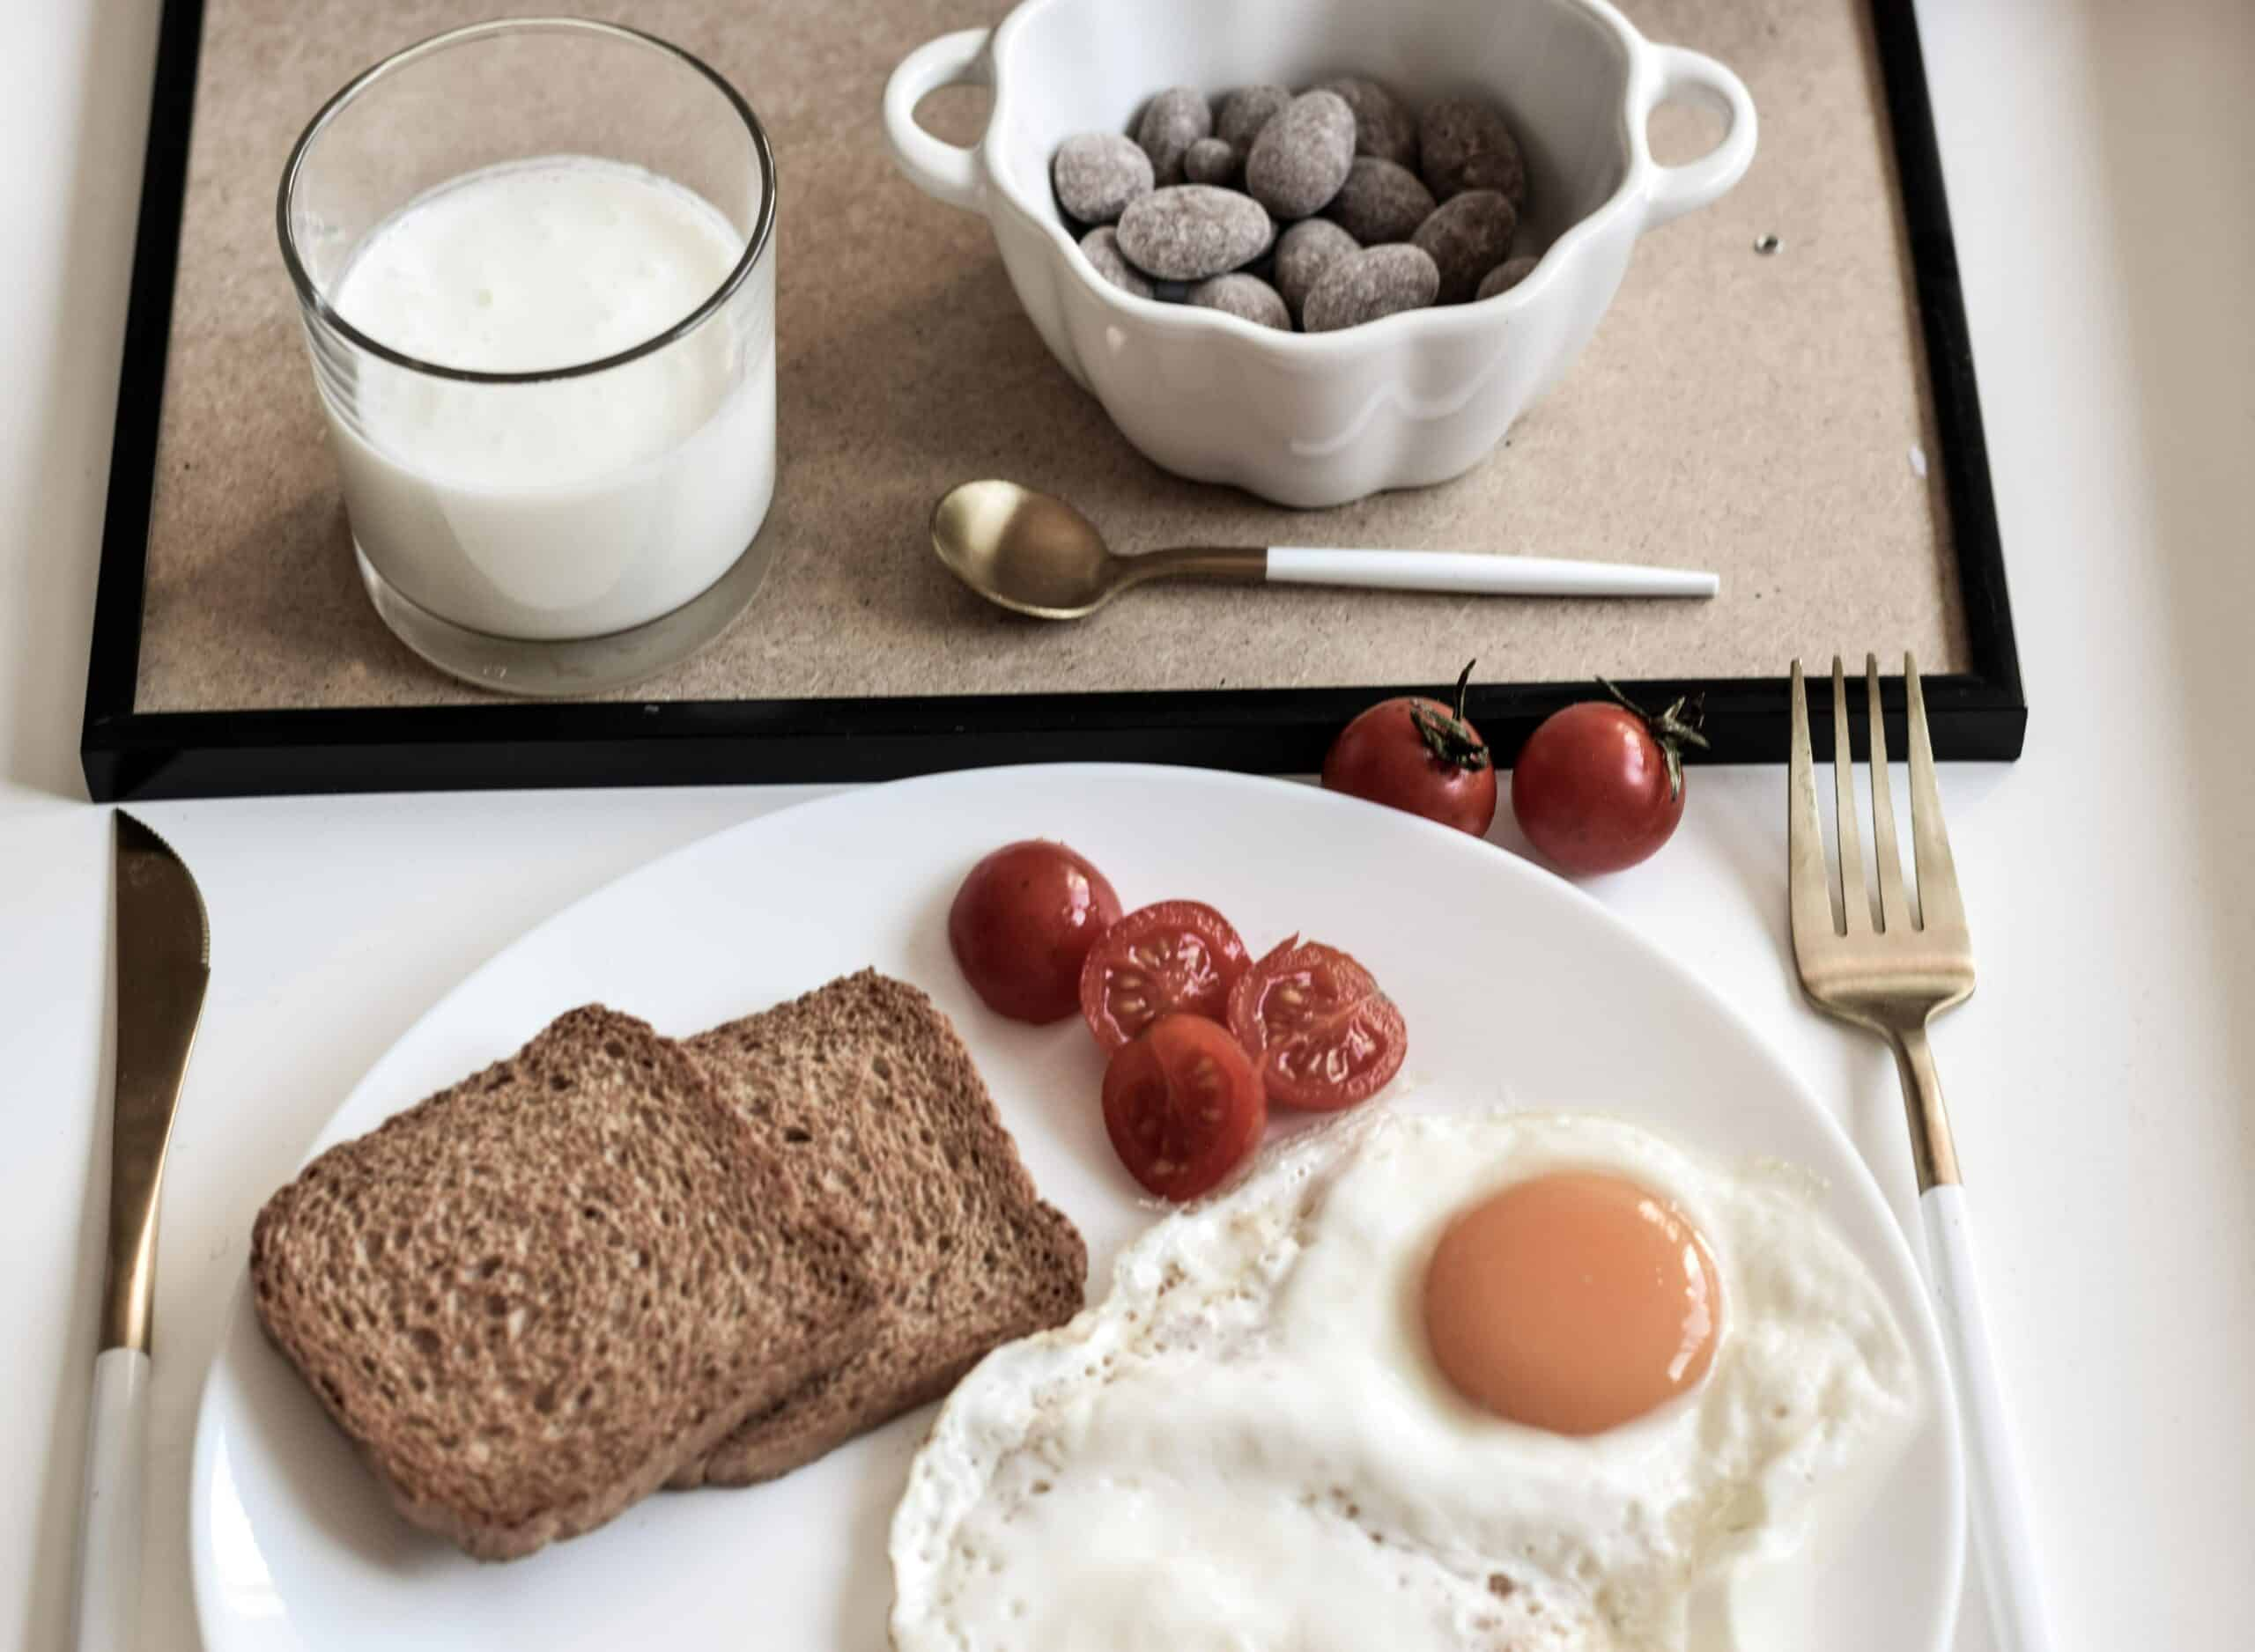 13-high-protein-and-low-fat-foods-for-a-healthy-diet